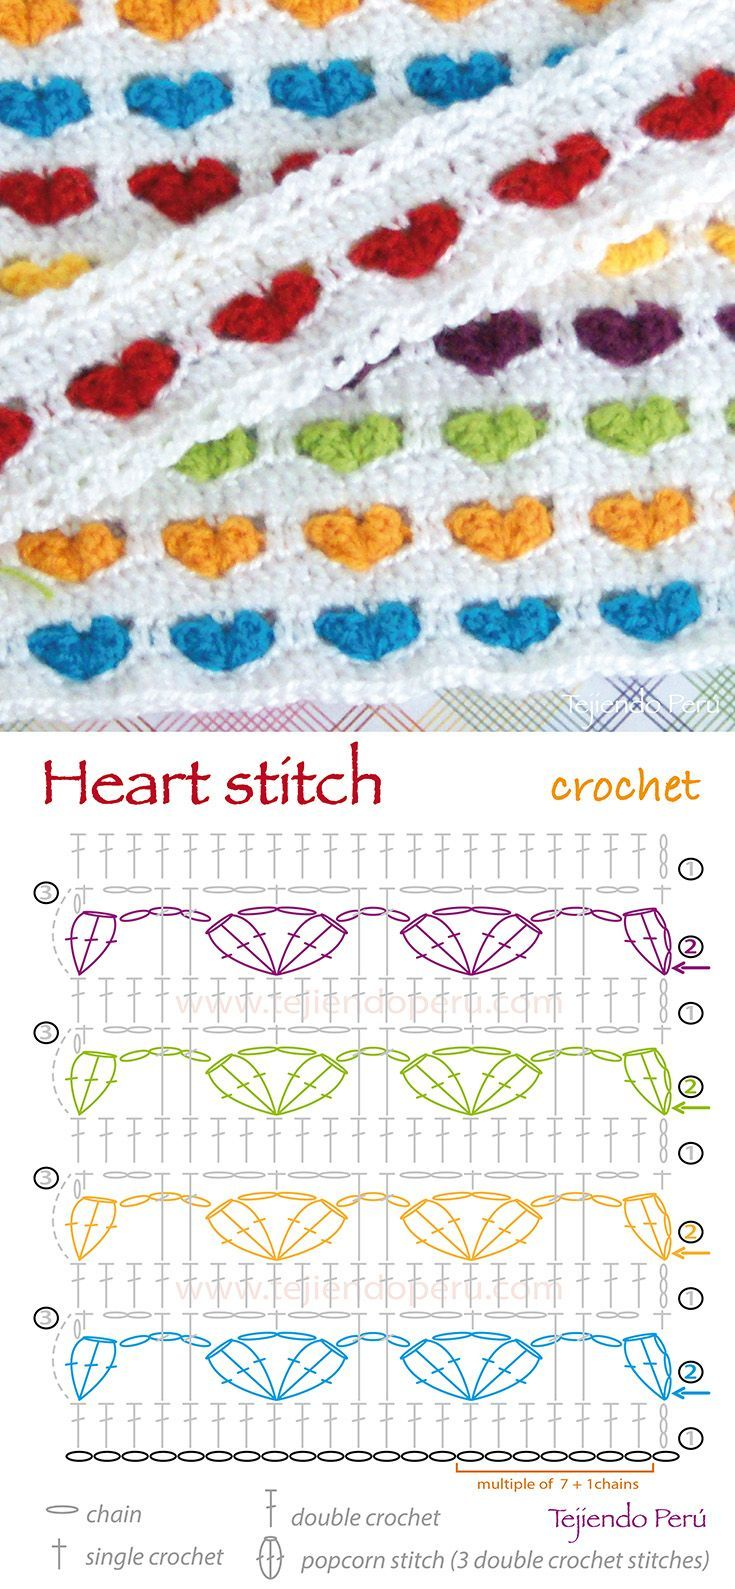 ergahandmade: Crochet Stitches + Diagrams, many more on site, #haken, gratis haakschema hartensteek, veel meer steken op site, #haken, #haakpatroon